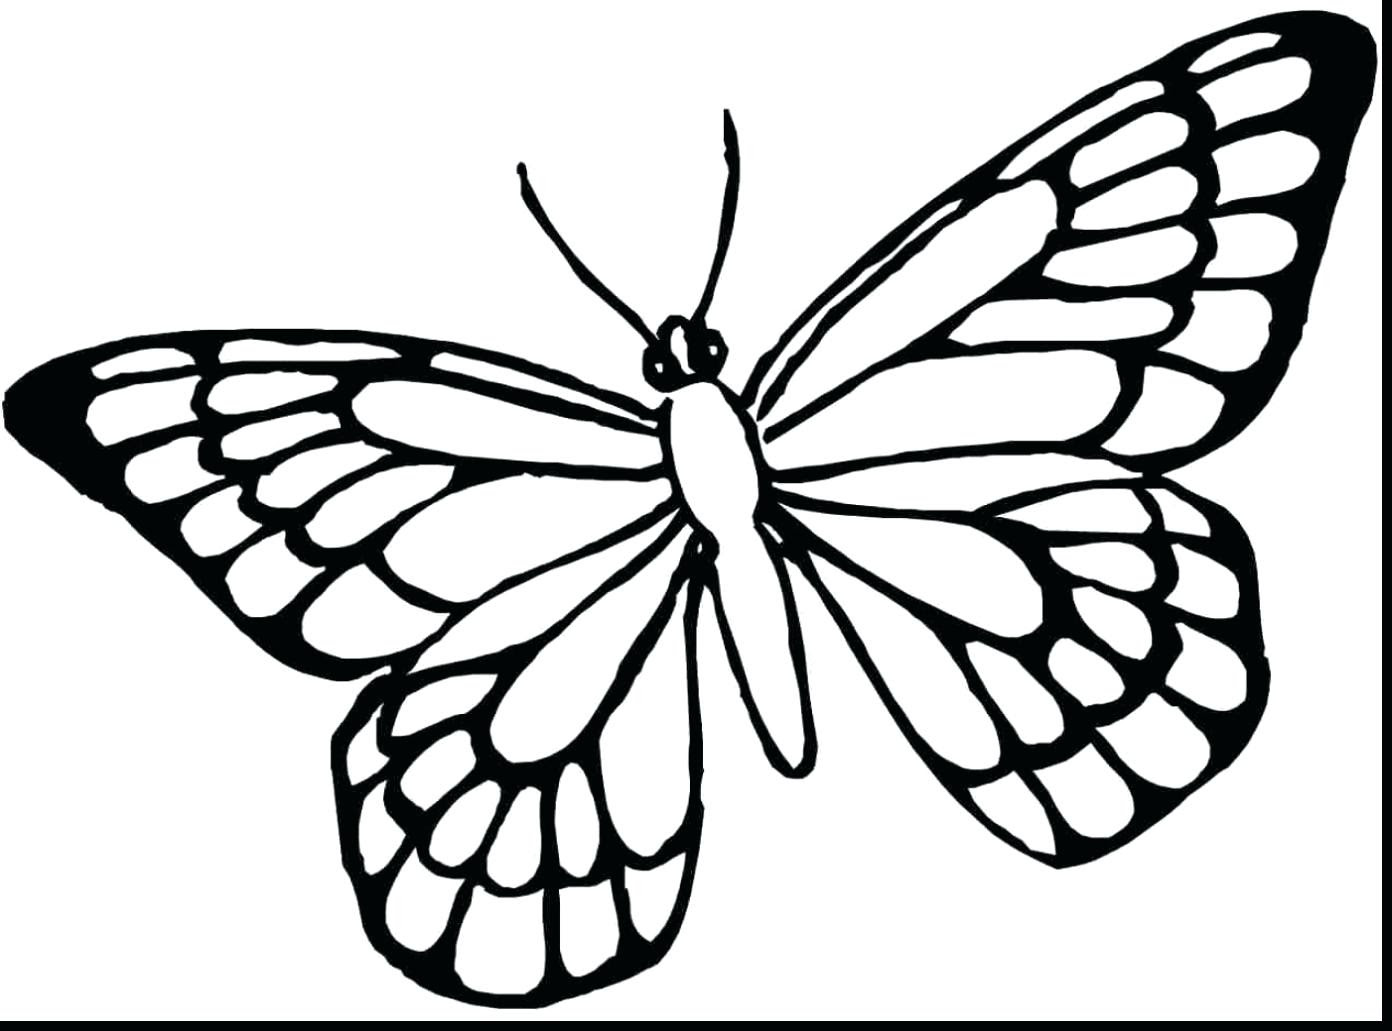 Butterfly Wing Outline | Free download on ClipArtMag